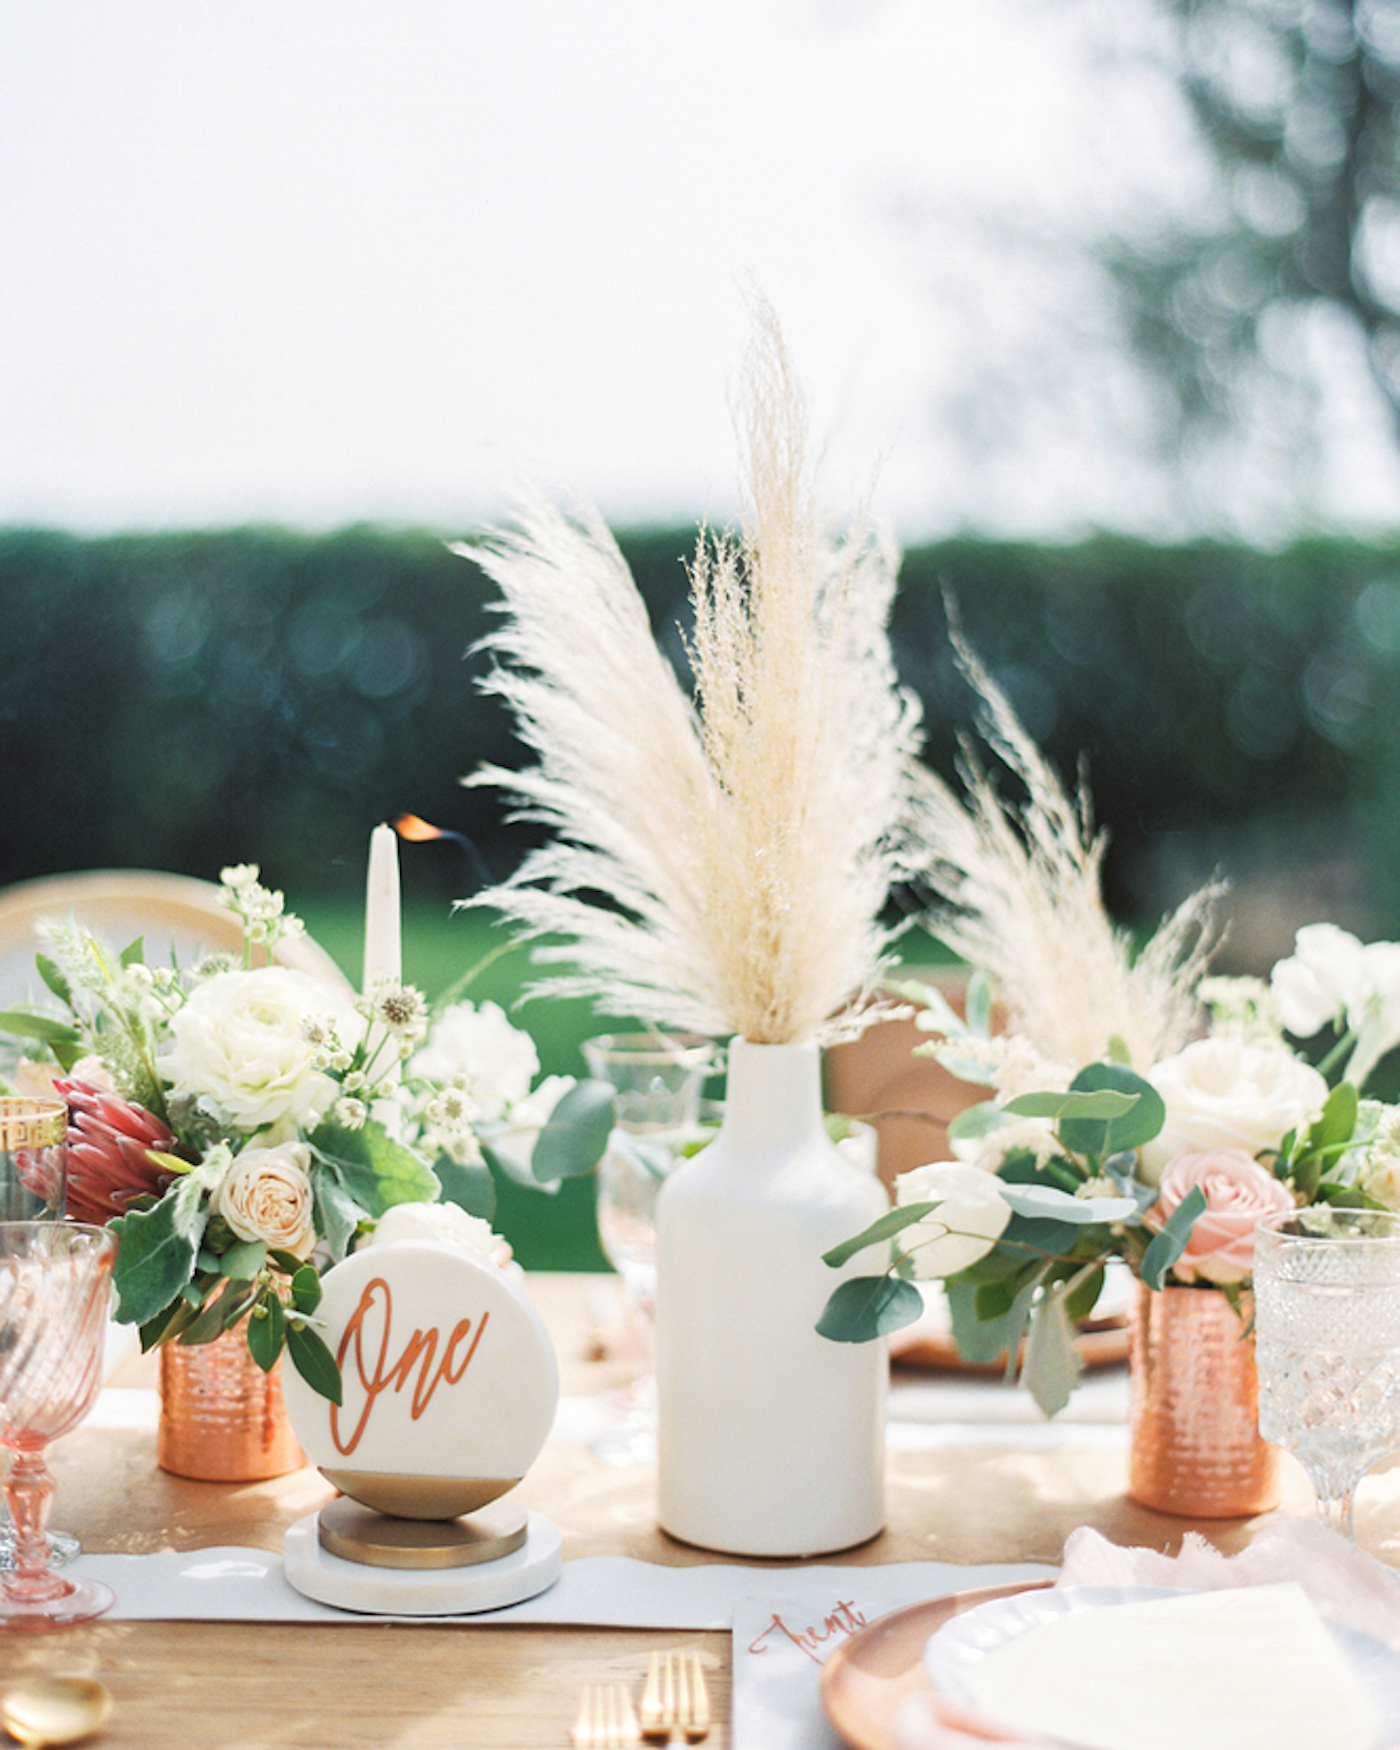 Wedding Website Url Ideas: Trending Now: Pampas Grass Wedding Ideas